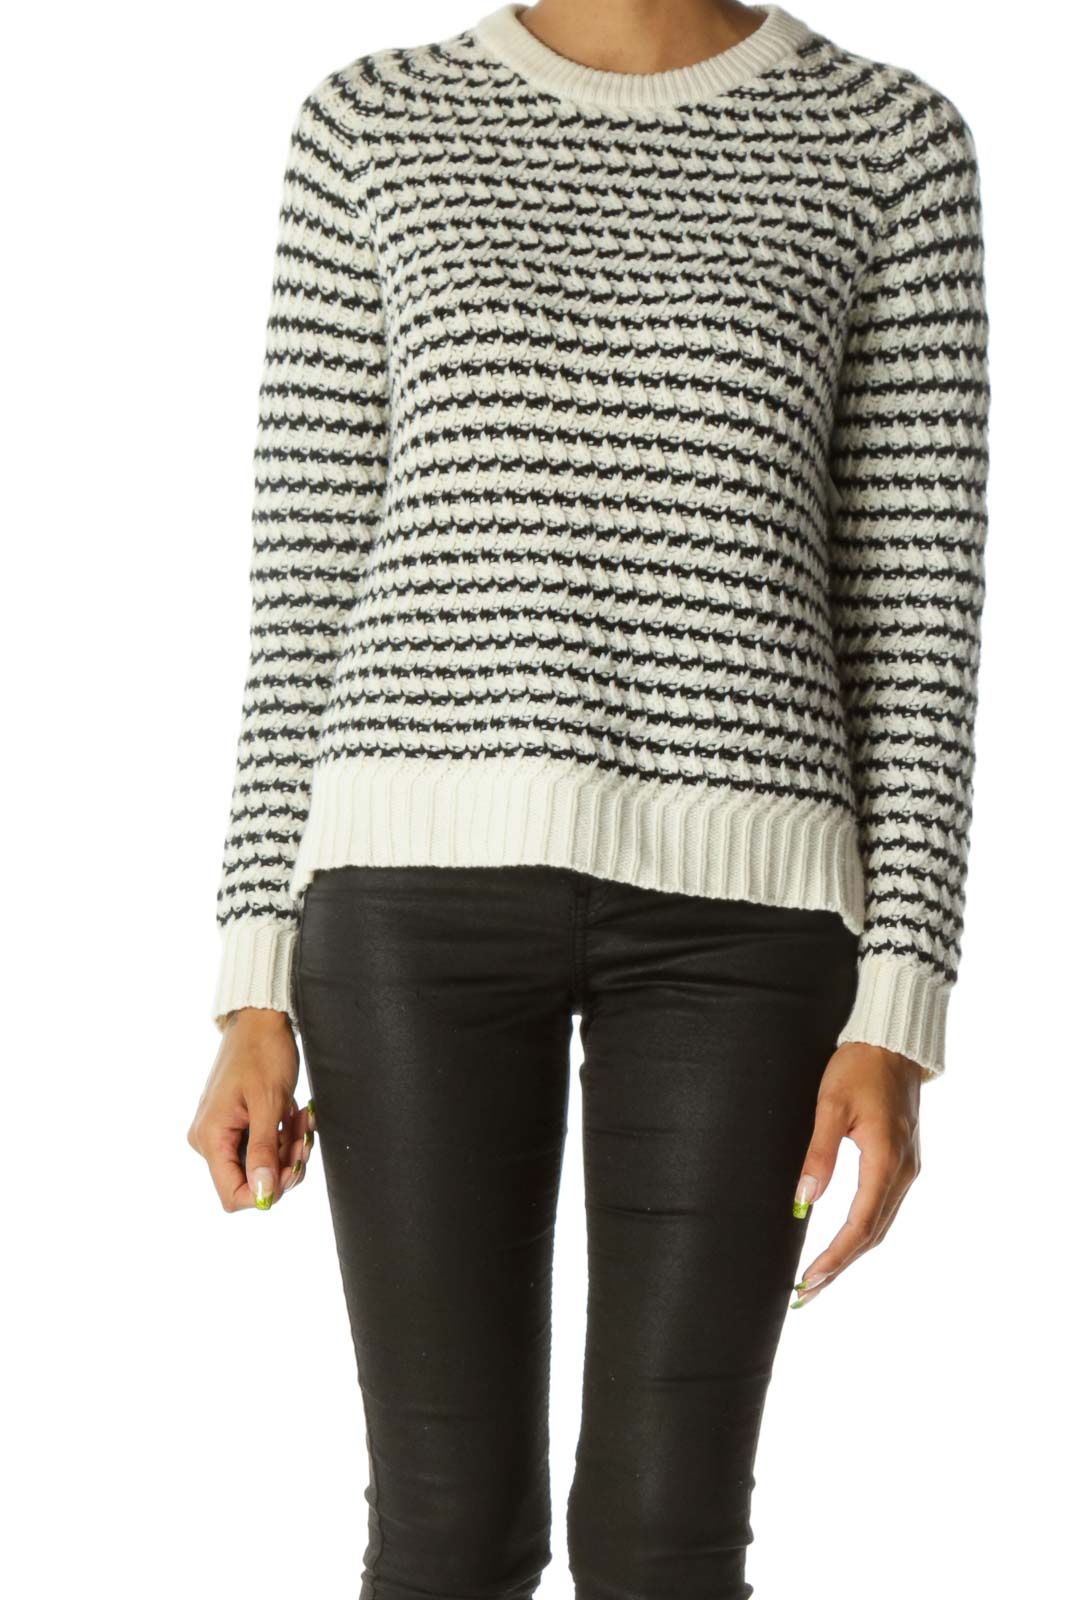 Cream & Black Striped 100% Wool Knit Sweater